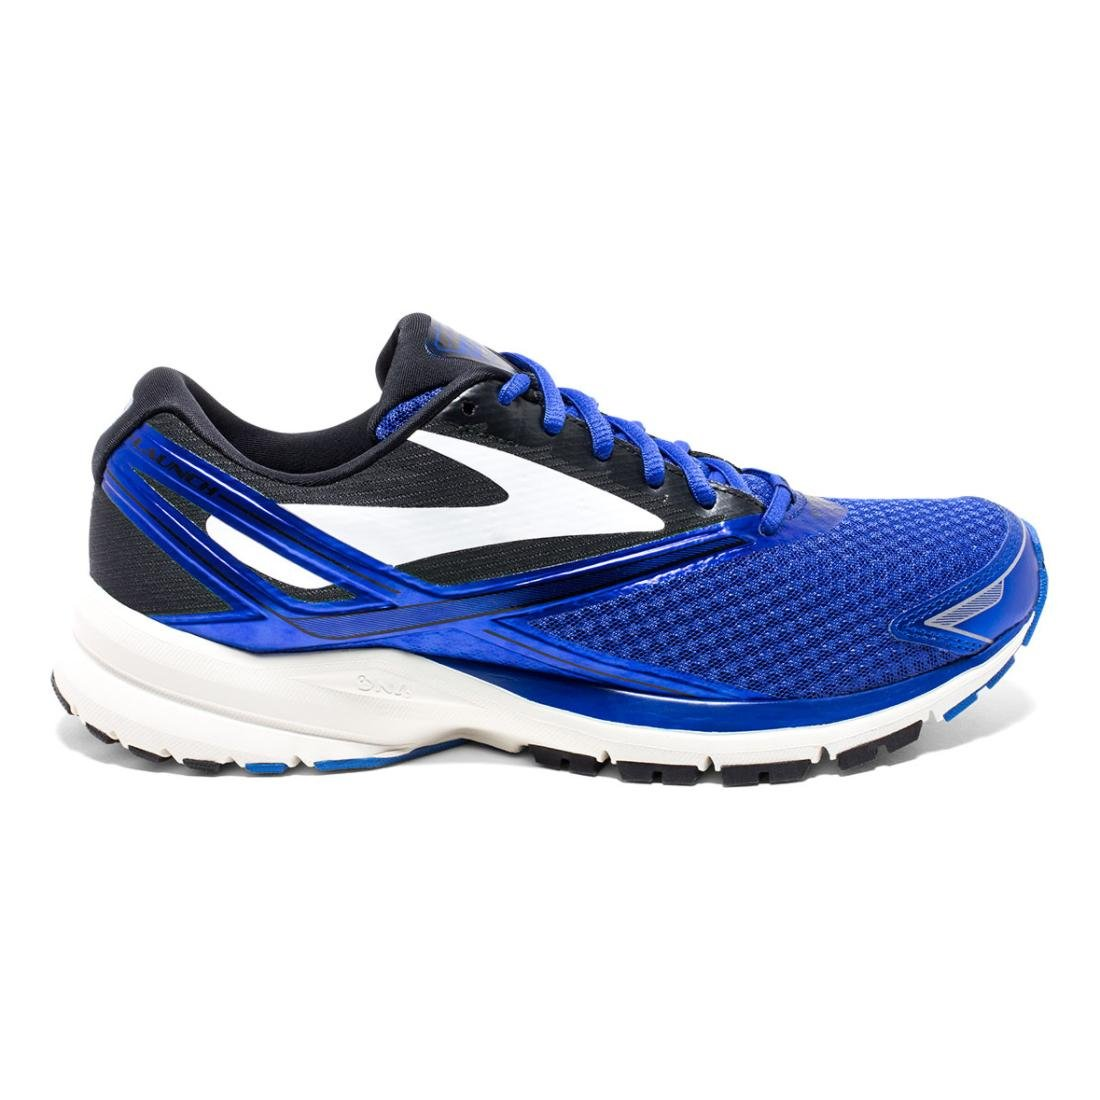 Brooks Mens Launch 4 B01GEYZG4A 12 D(M) US|Electric Brooks Blue/Black/White